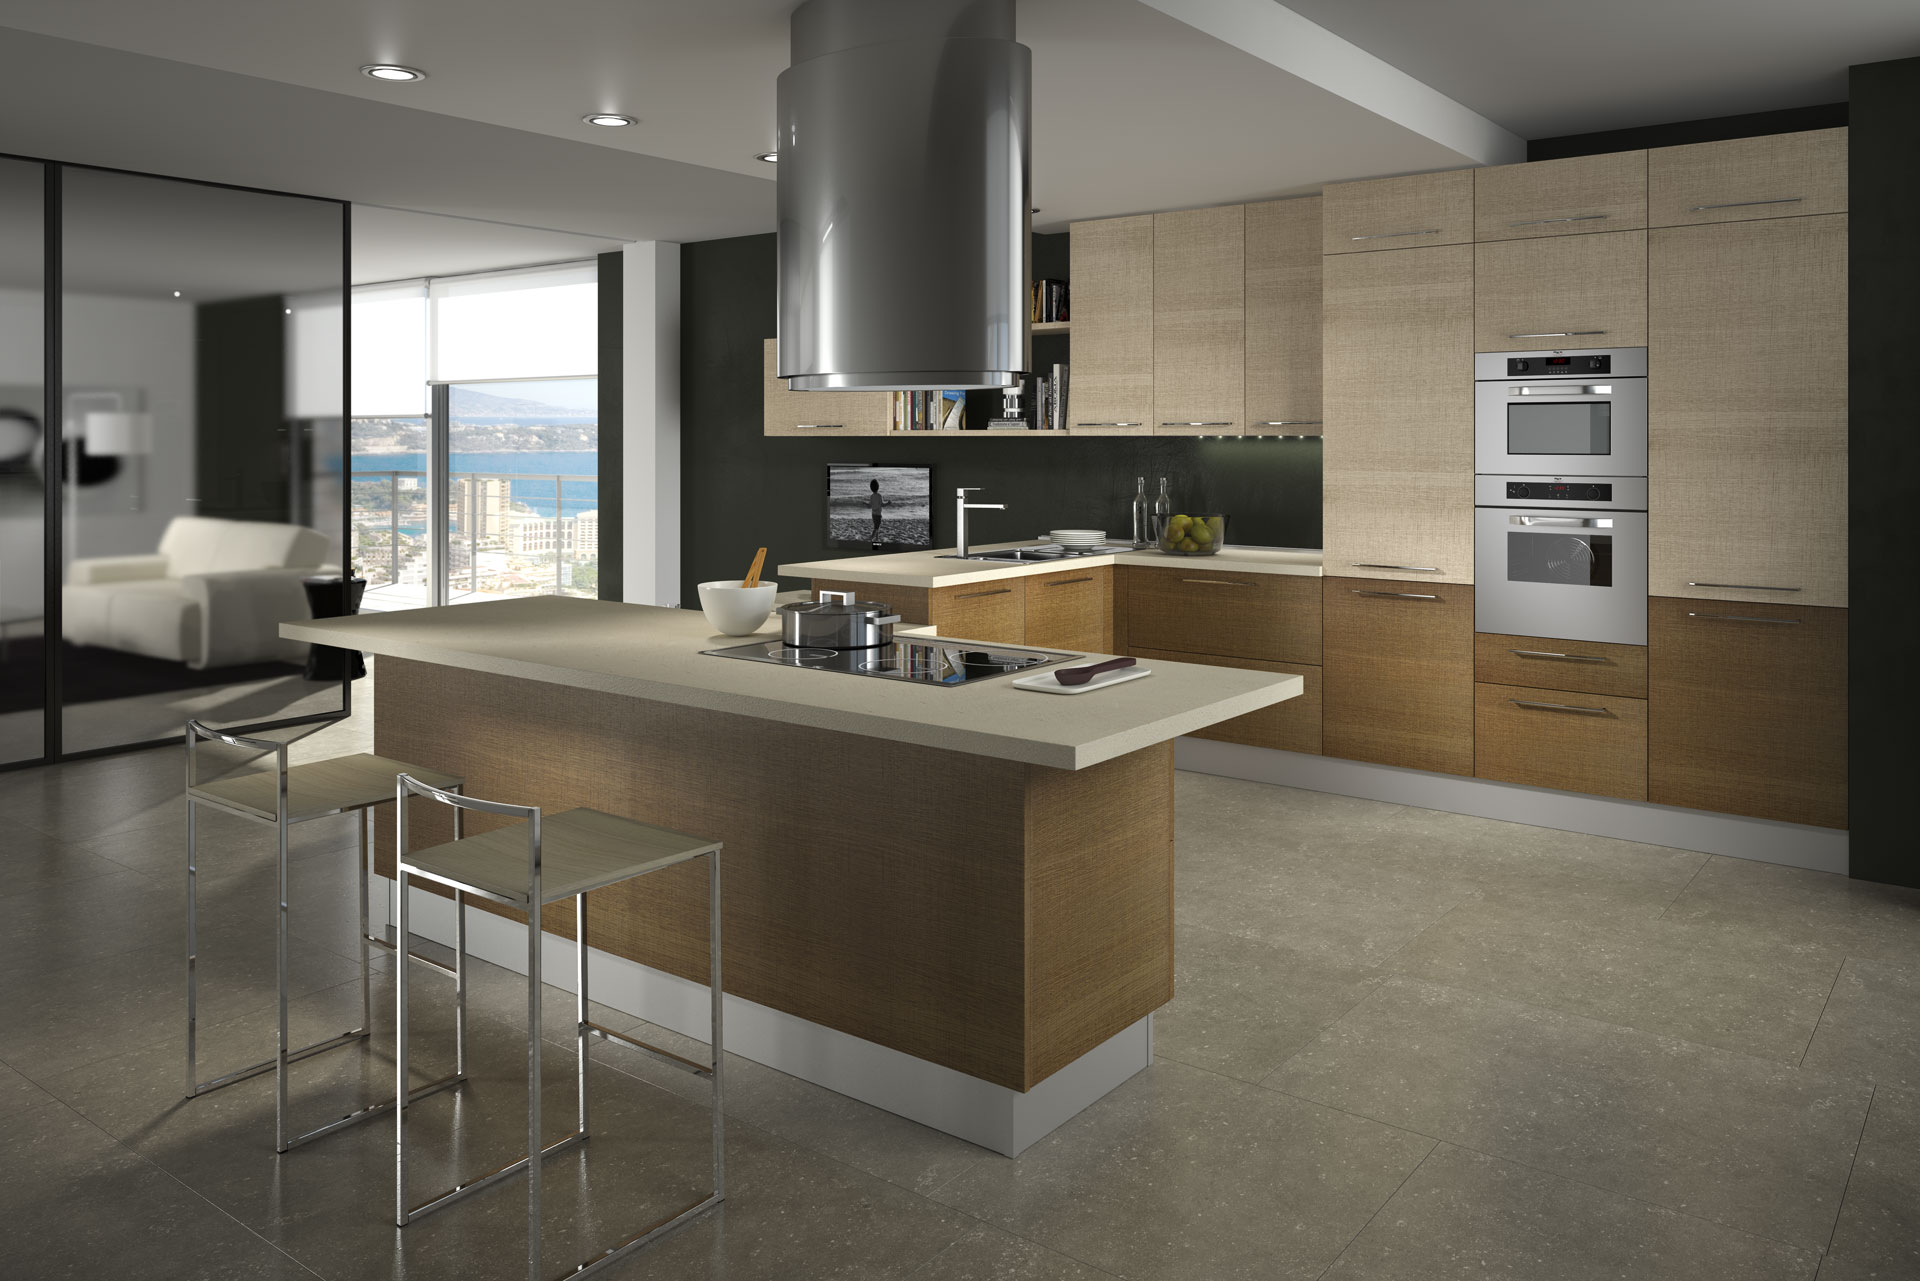 kitchens maior | house italy - Cucine Italia